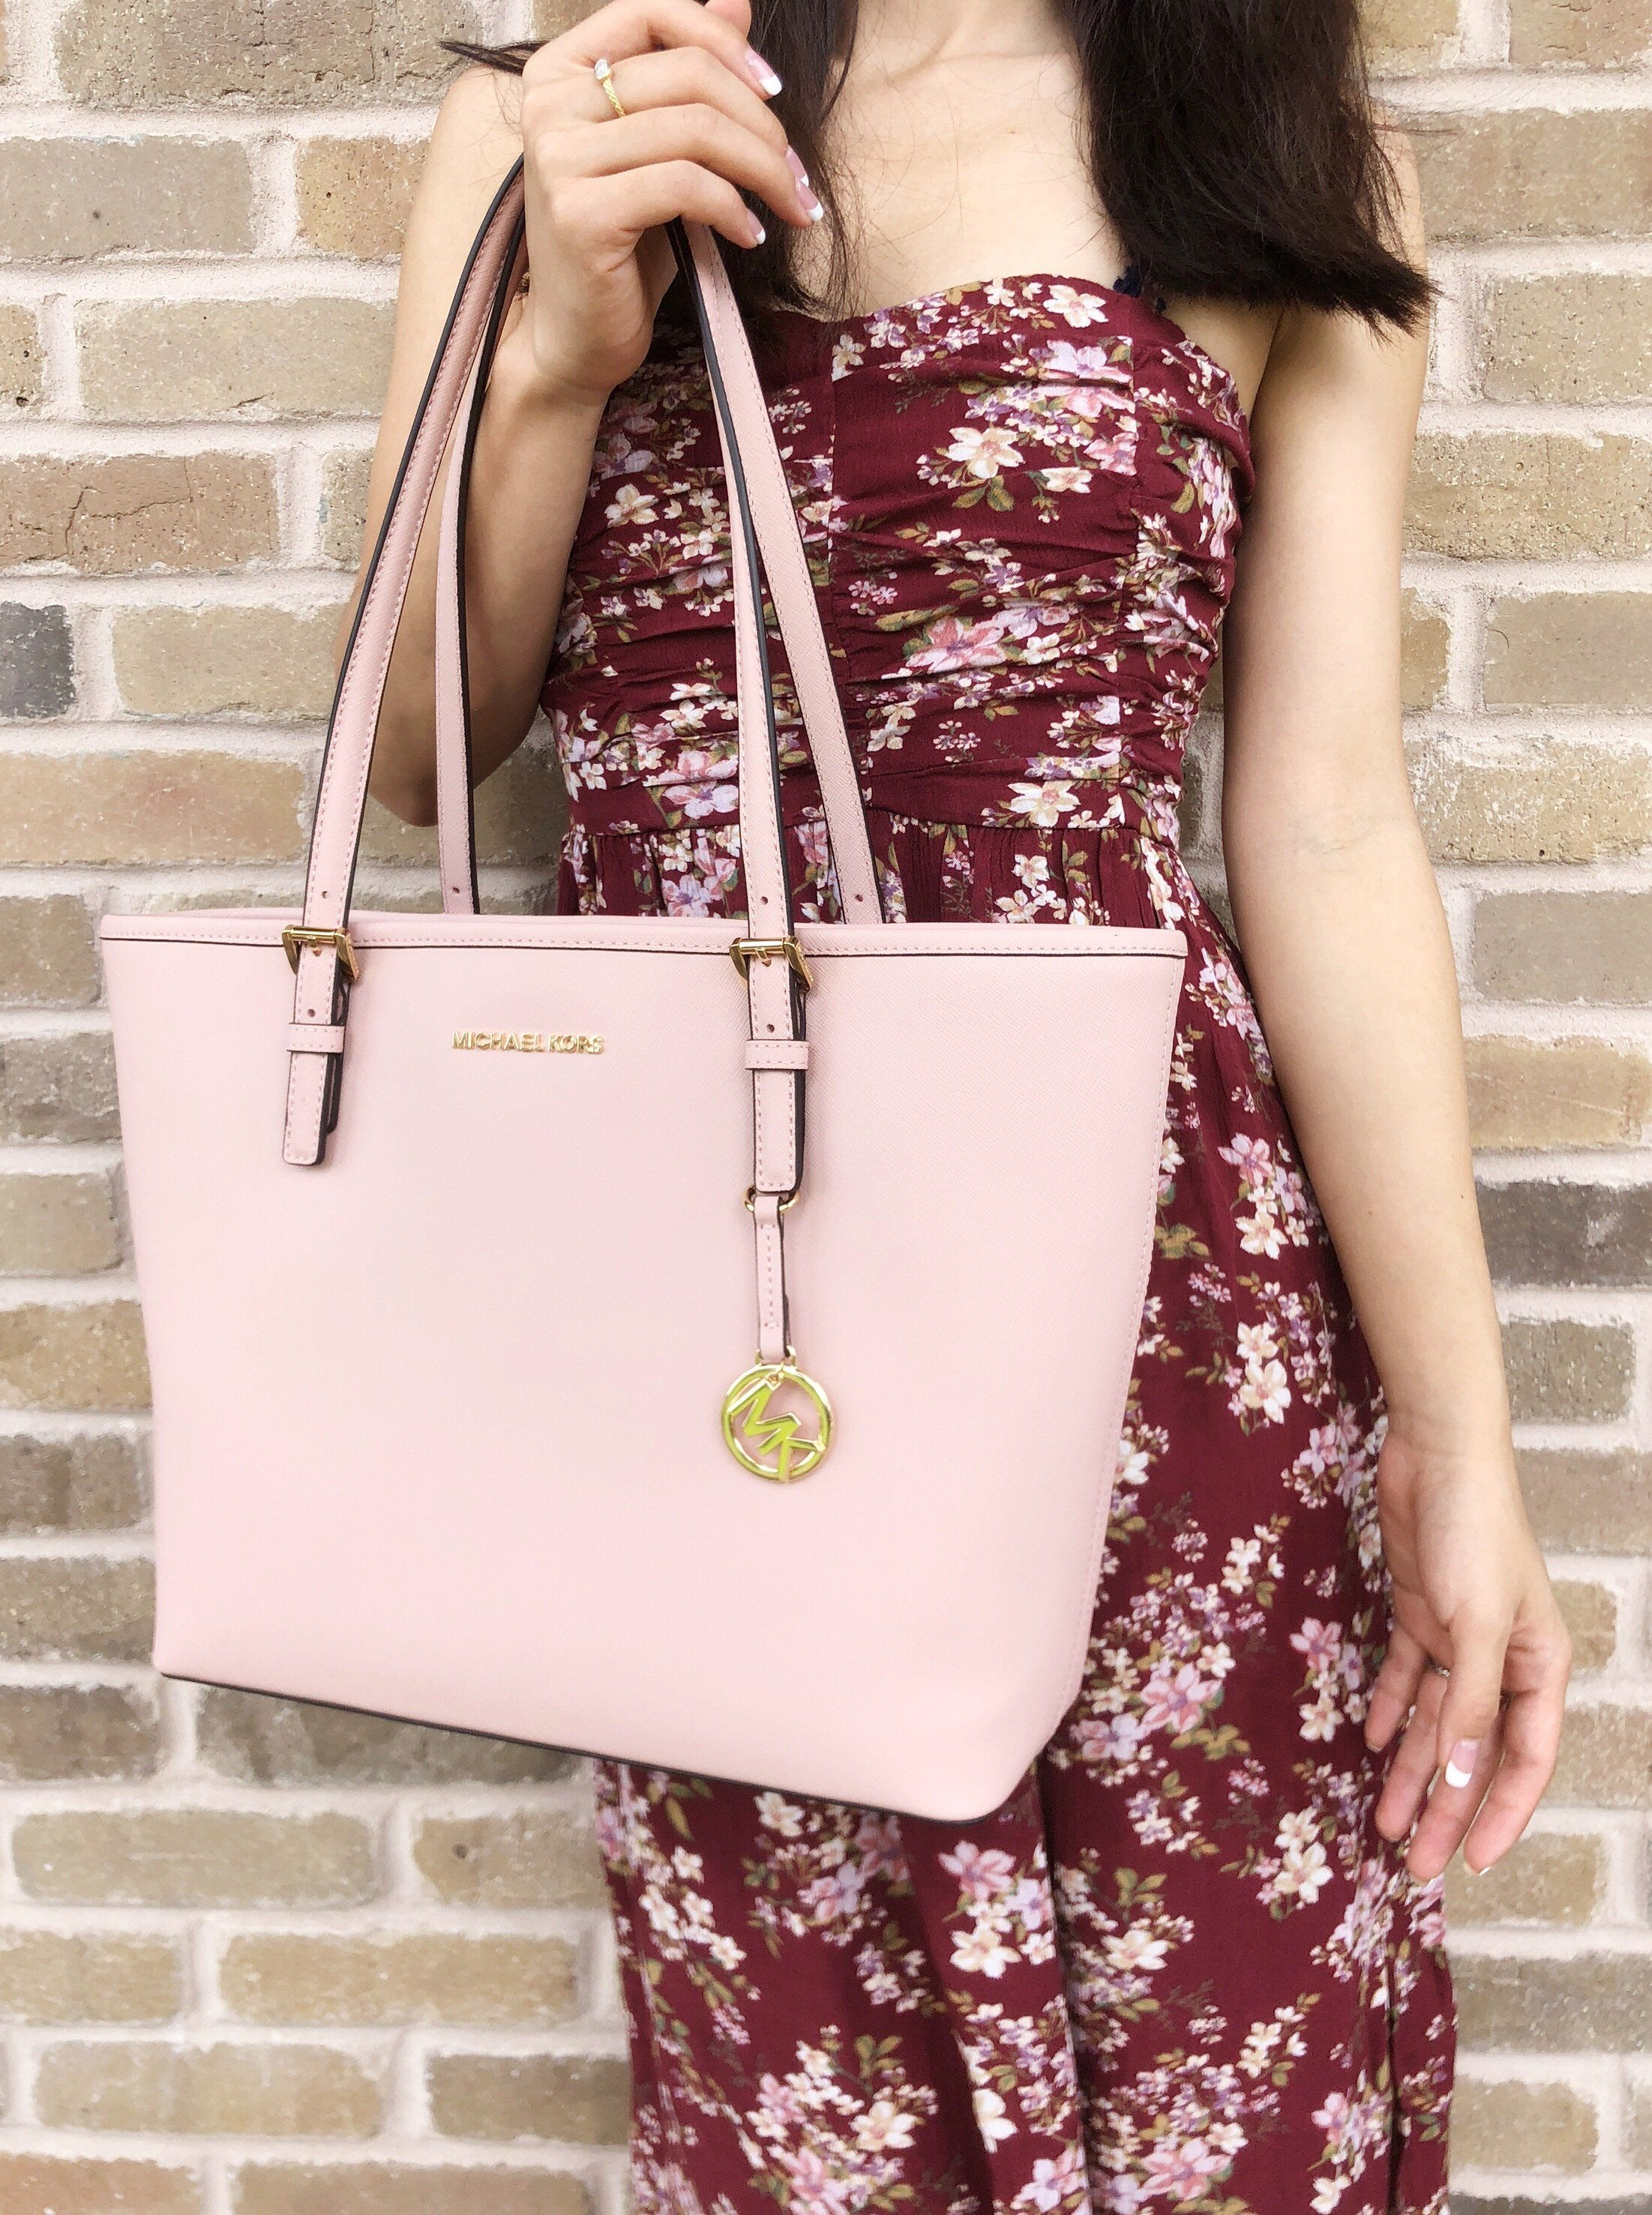 b642a3a4ae38 Michael Kors Jet Set Travel Medium Carryall Tote Saffiano Leather Pastel  Pink  MichaelKors  MK  Handbags